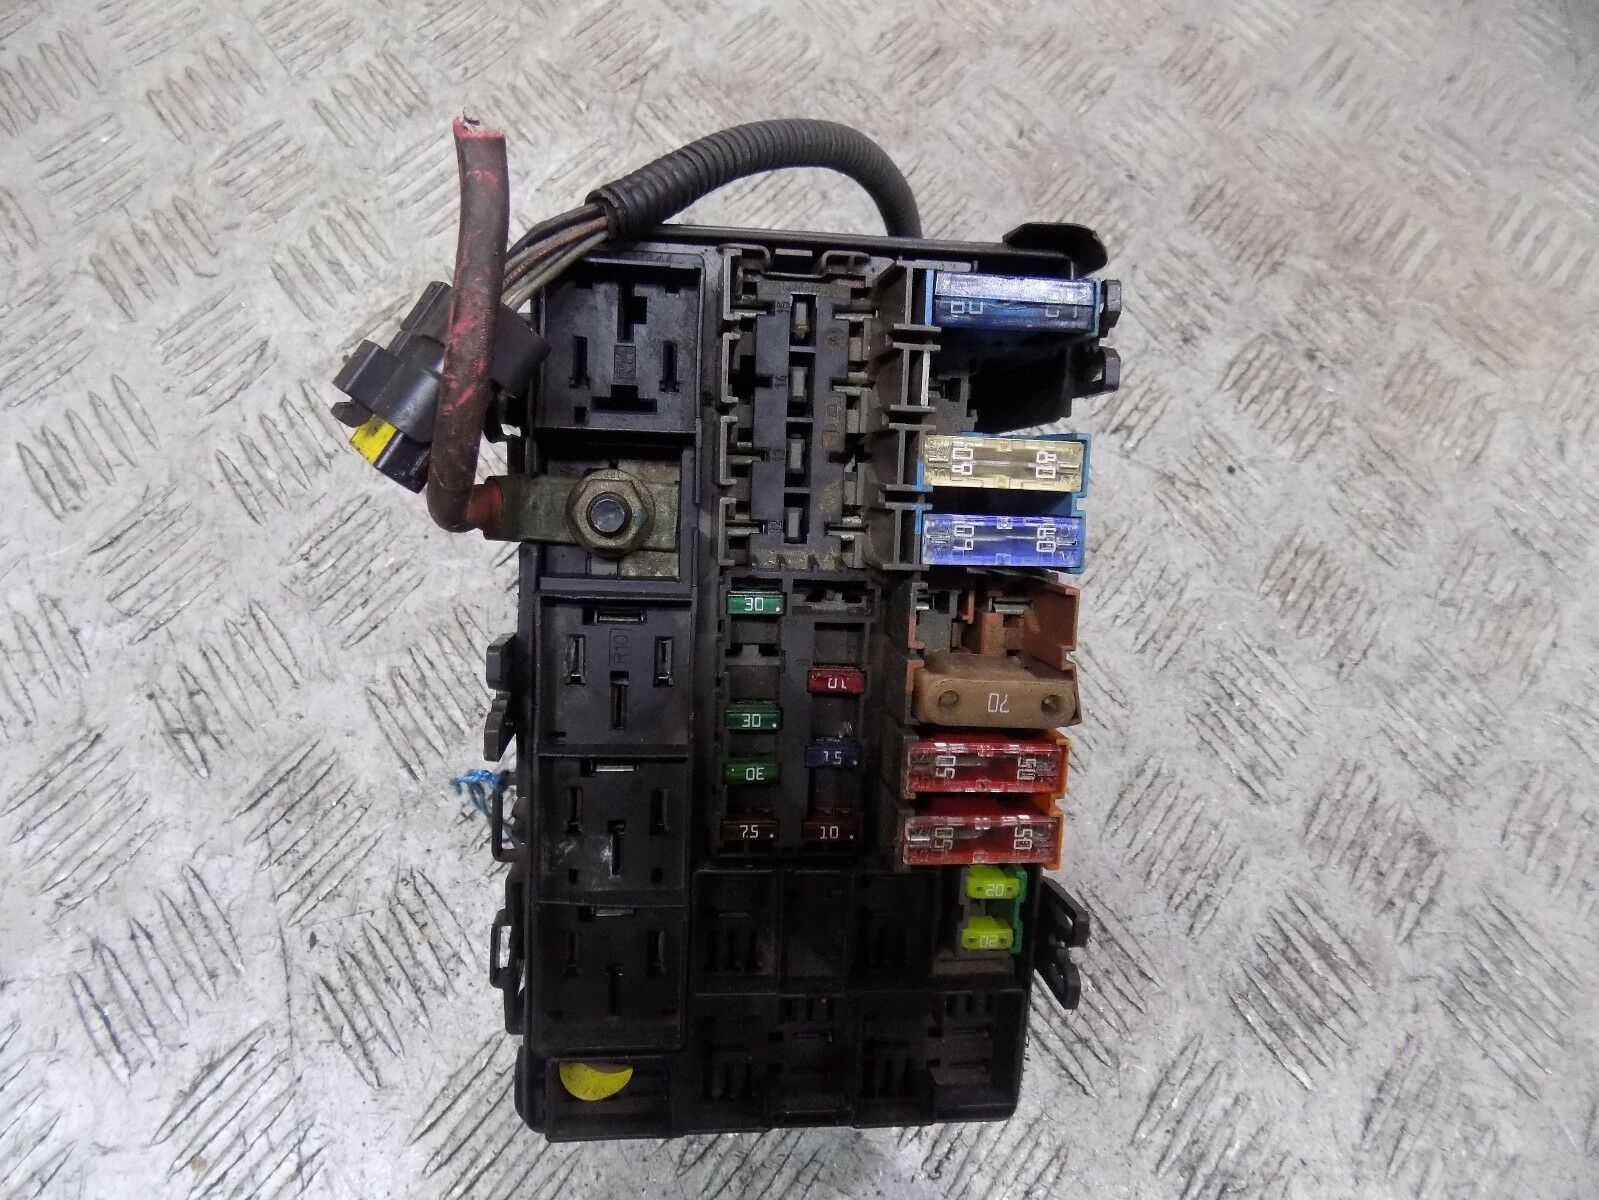 Fuse Box Renault Espace 2000 Wiring Library 22 Diesel Auto 2002 2003 2004 2005 2006 8200272454 1 Of 4only